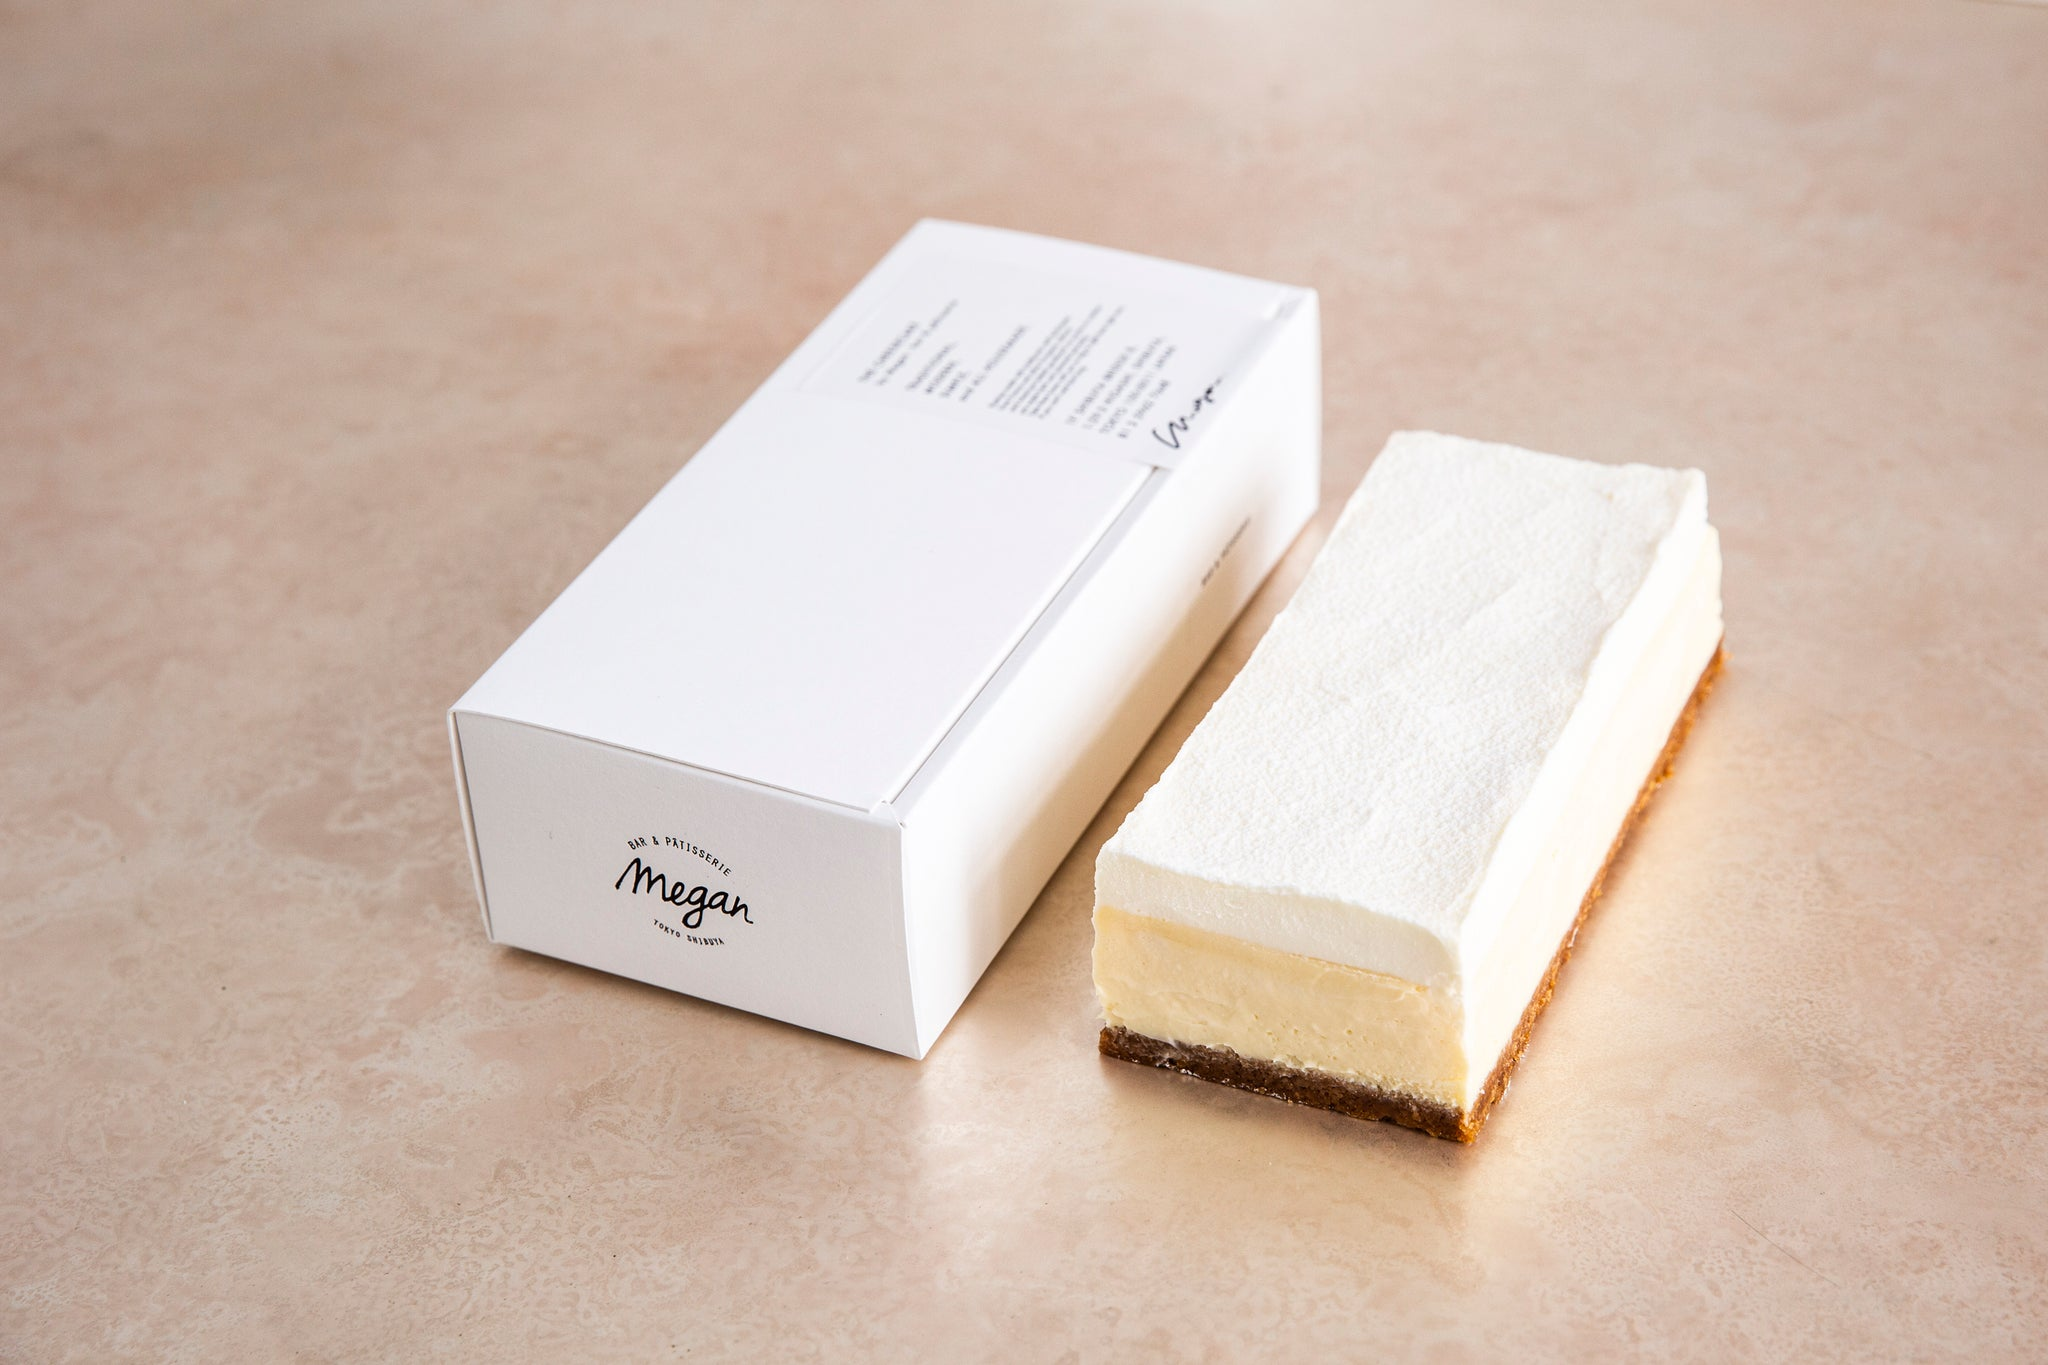 【2/27販売開始】THE CHEESECAKE by Megan - bar & patisserie